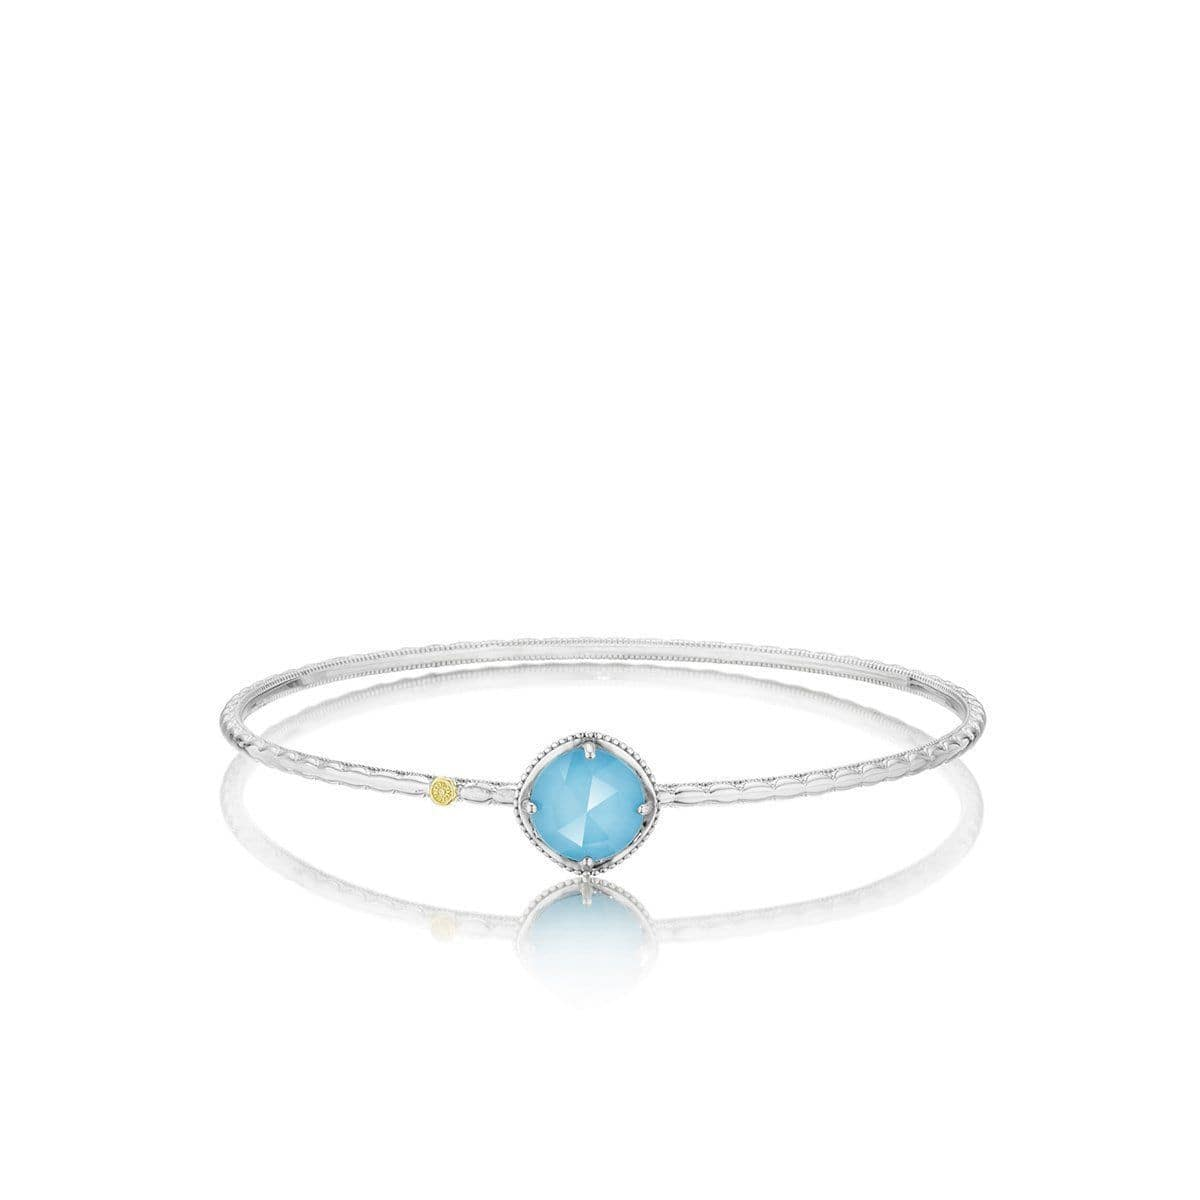 Silver 10mm Round Turquoise Bangle - SB12305-Tacori-Renee Taylor Gallery